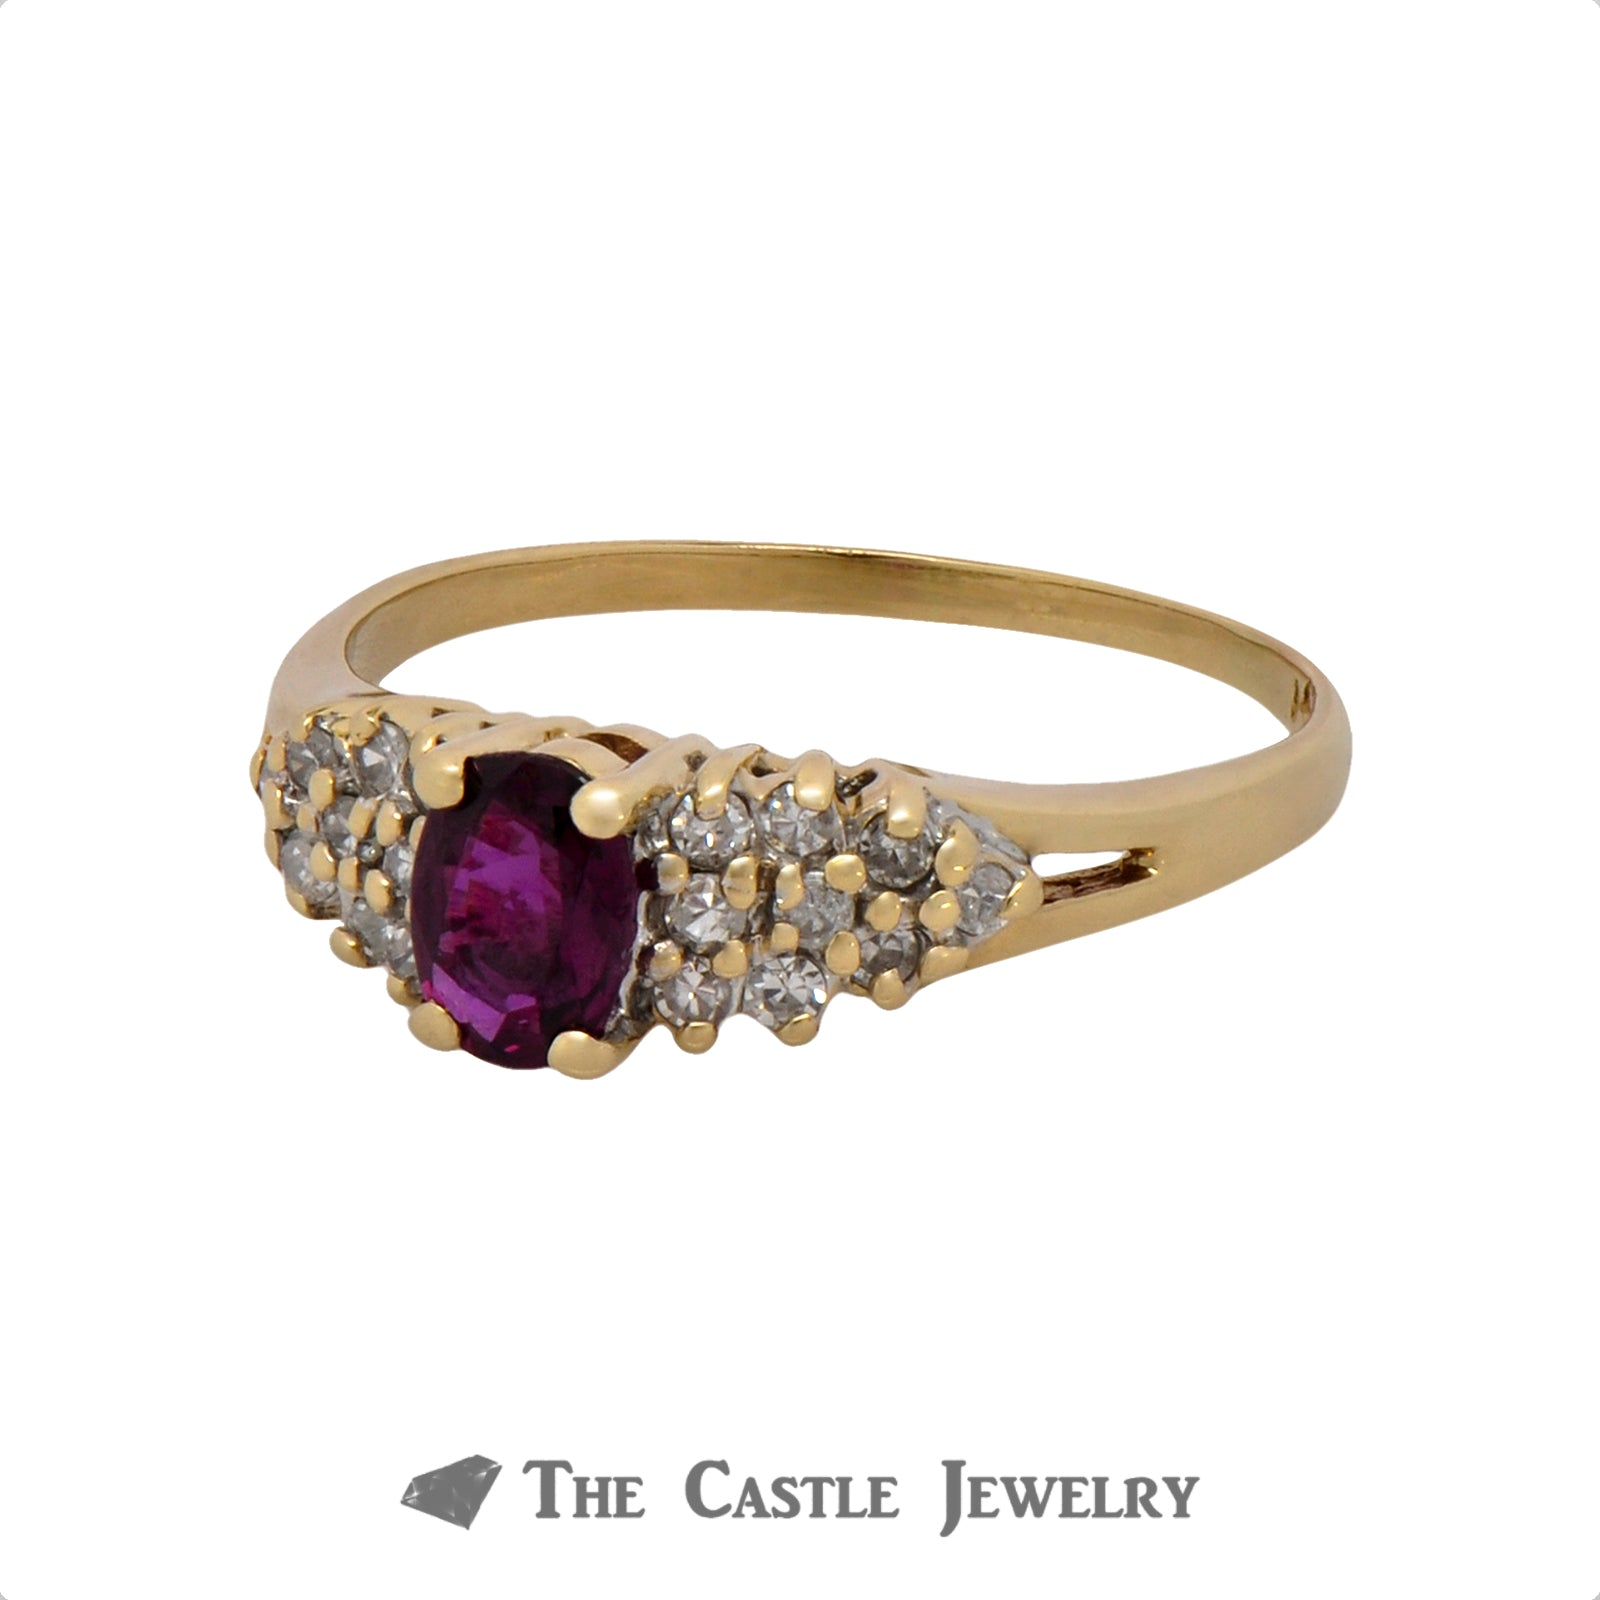 Rhodolite Garnet Ring with .18cttw Diamond Cluster Accents in 14k Yellow Gold